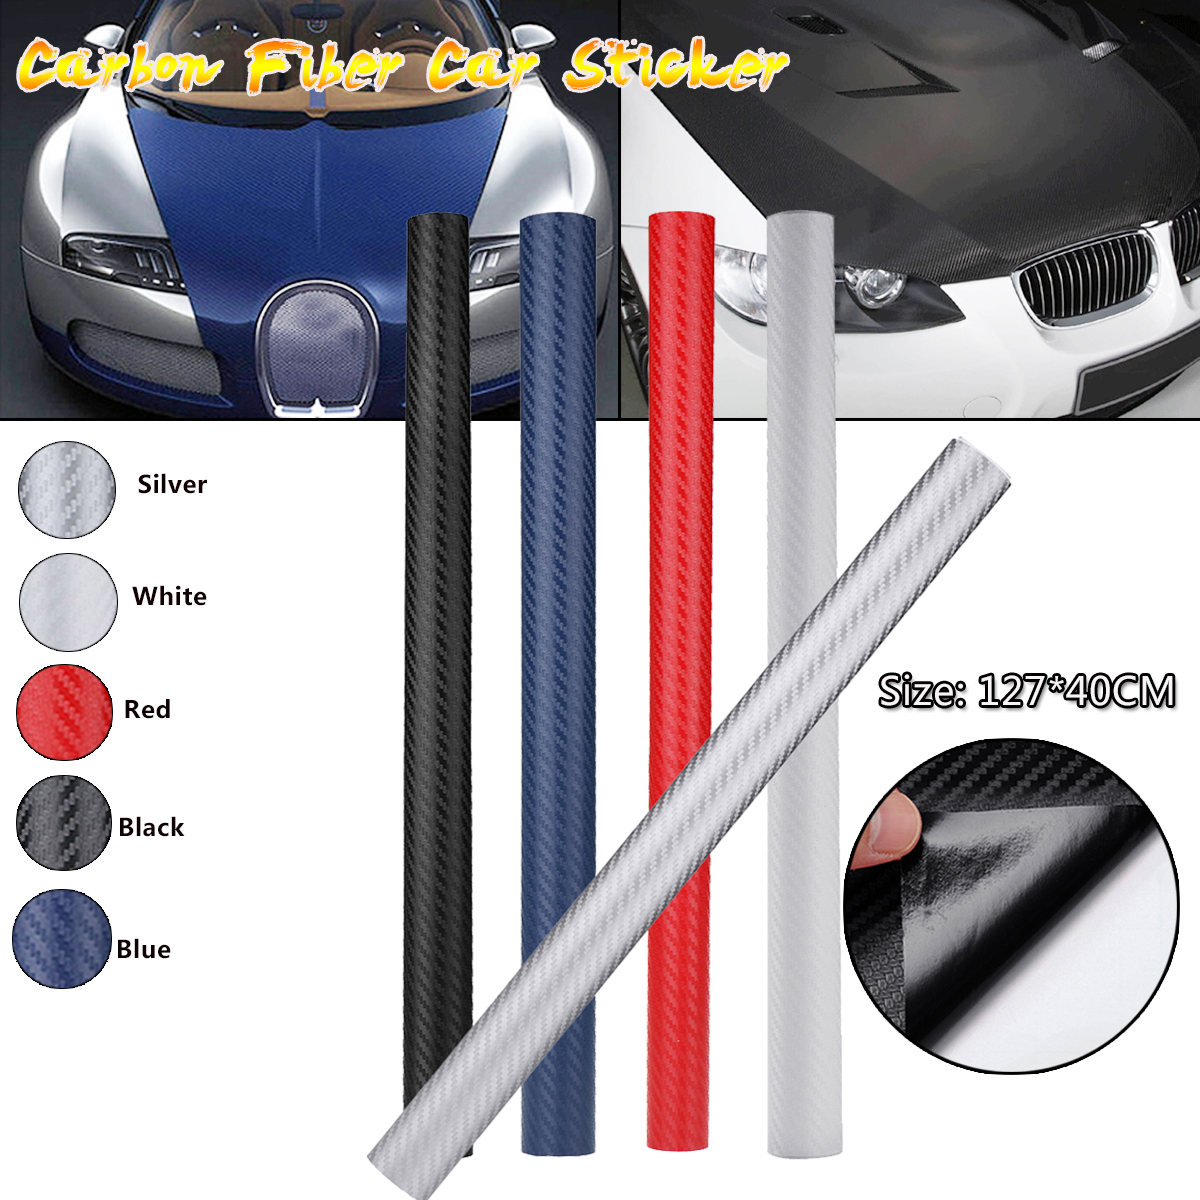 1PC 3D Carbon Fiber Auto Car Sticker DIY Vinyl Decal Wrap Roll Sheet Film 127 x 40cm car 3d pvc carbon fiber decoration sticker deep golden 30 x 127cm